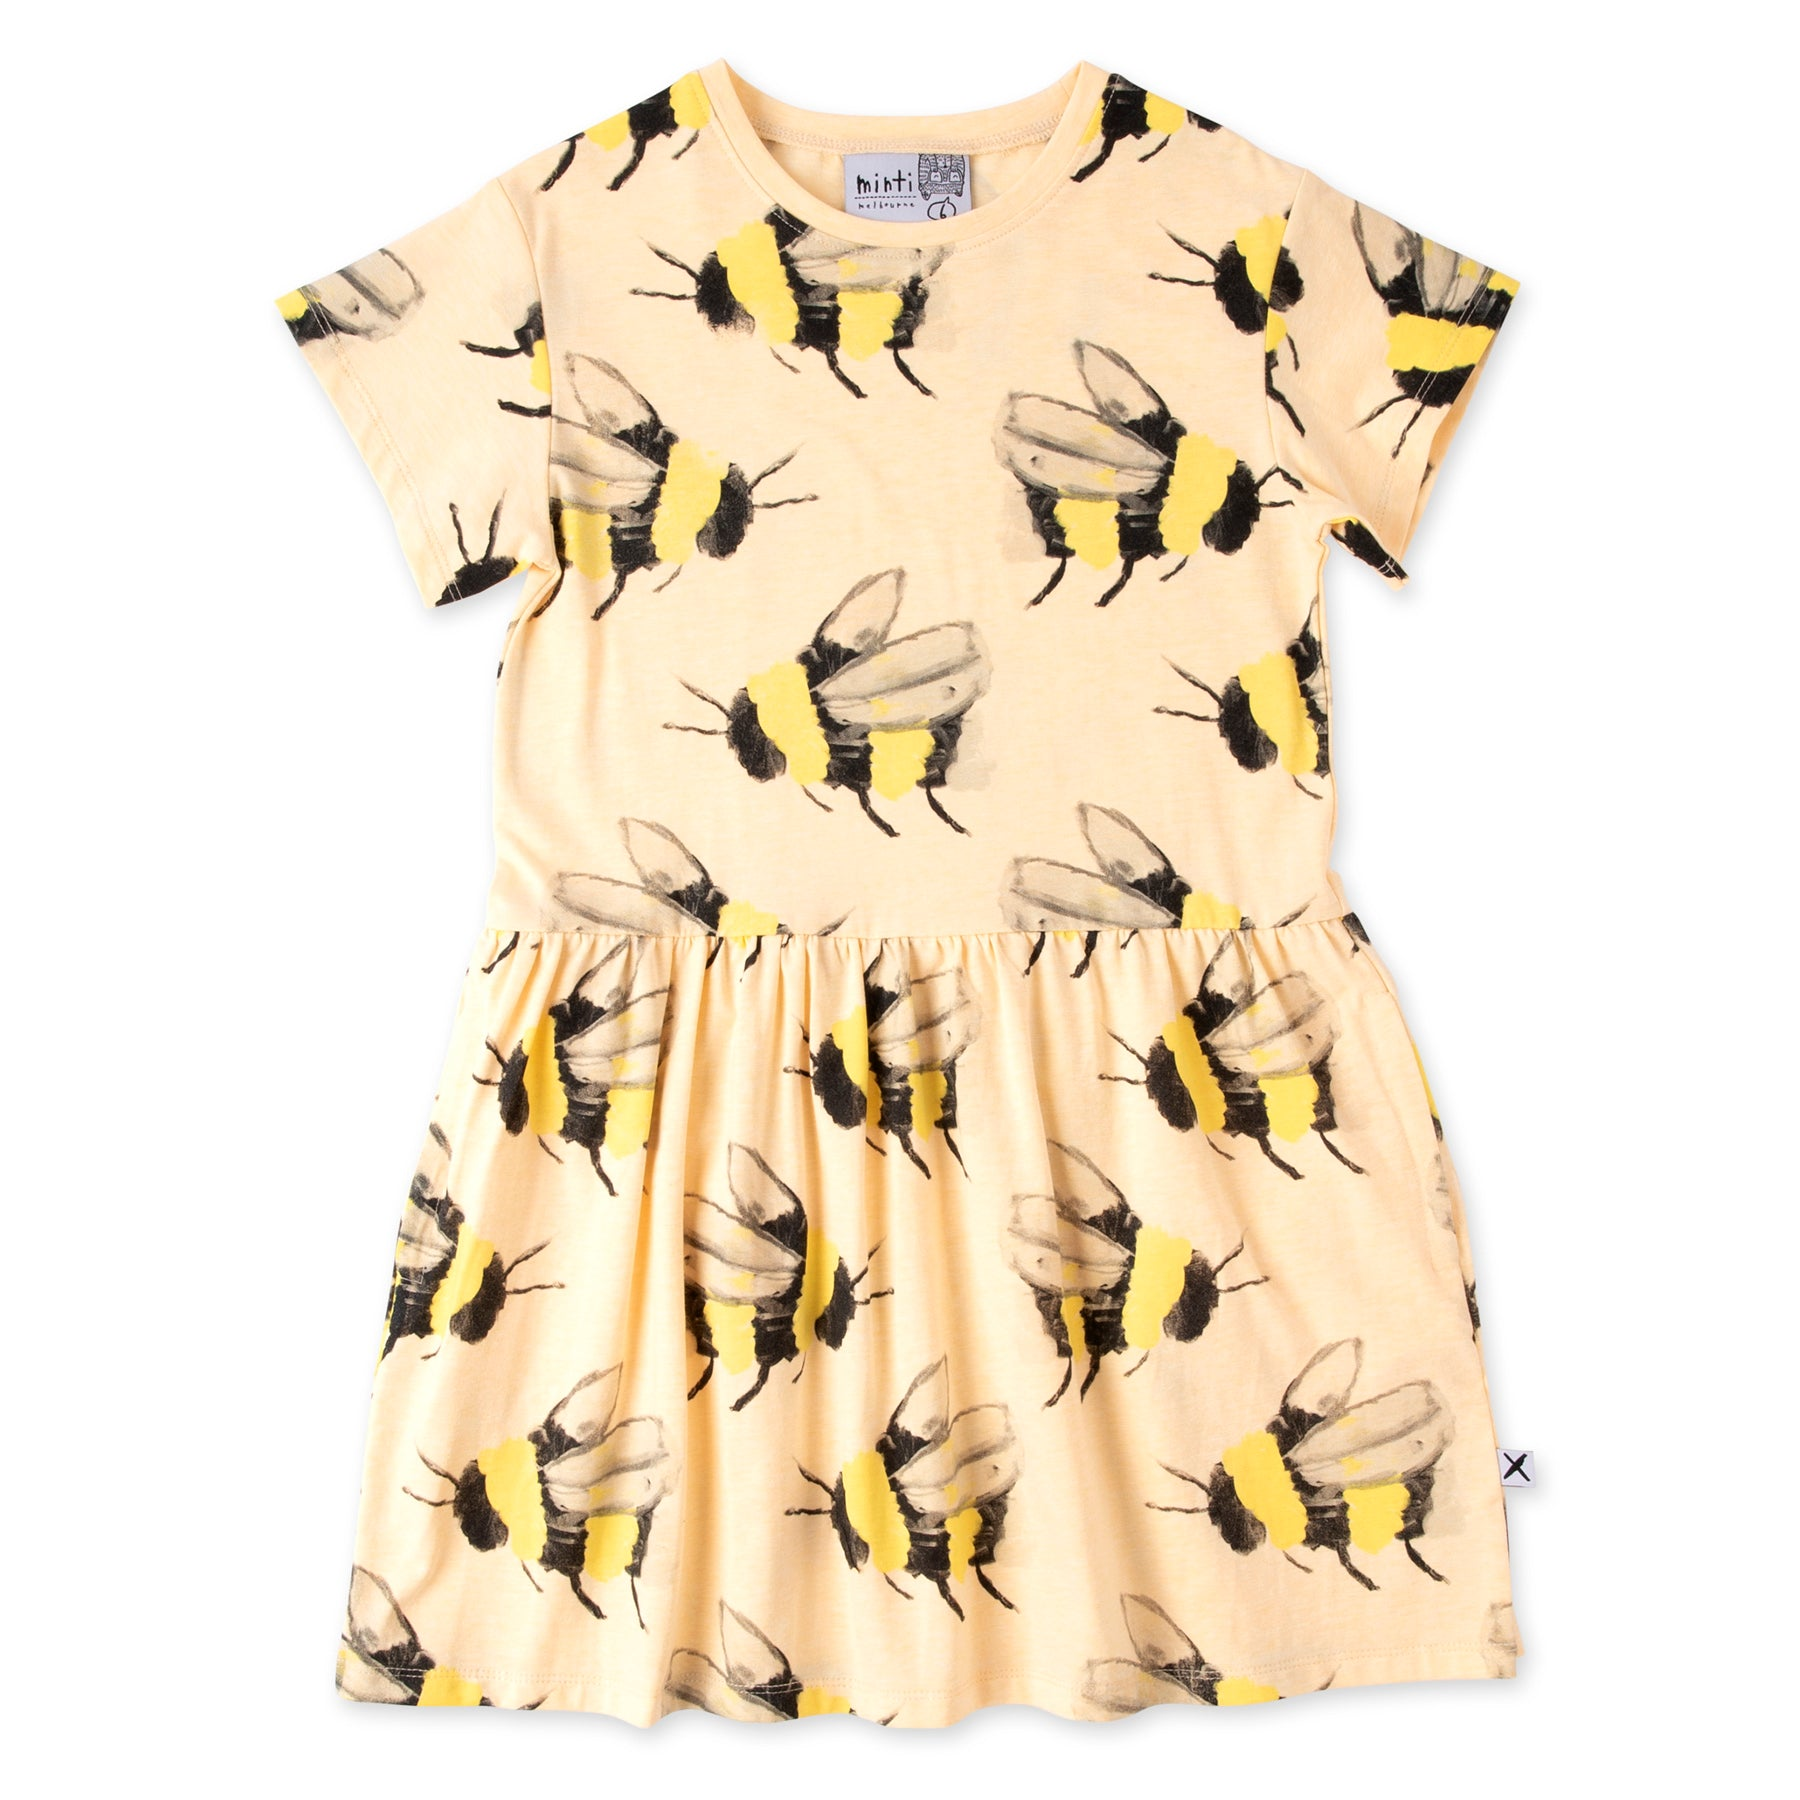 We Need Bees Dress